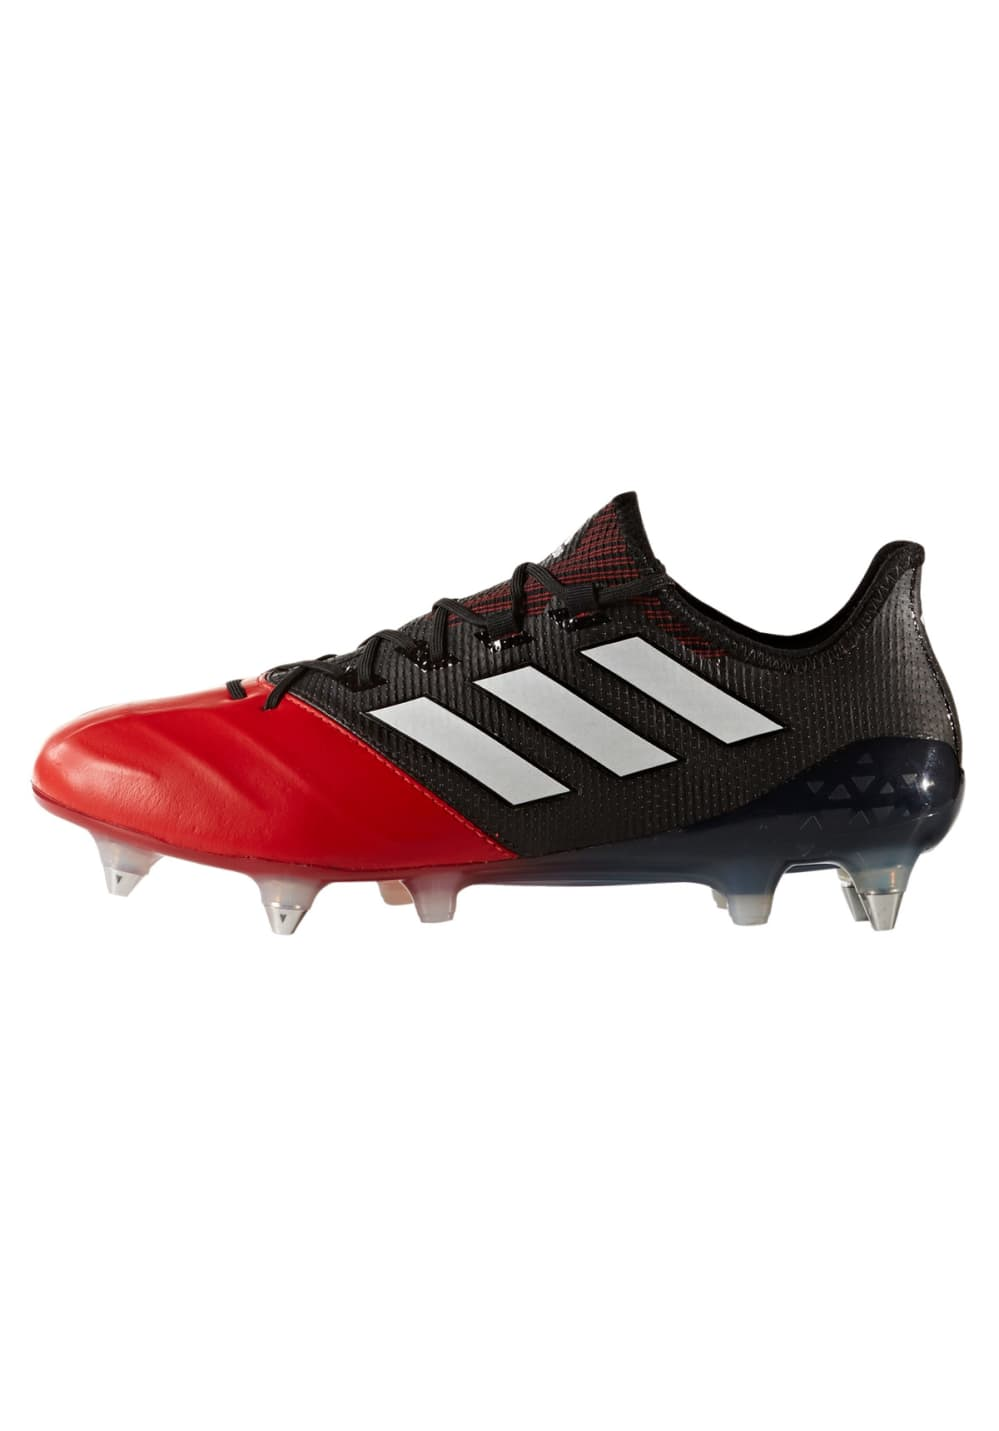 san francisco b1c31 2ce4b adidas ACE 17.1 LEATHER SG - Football Shoes for Men - Black